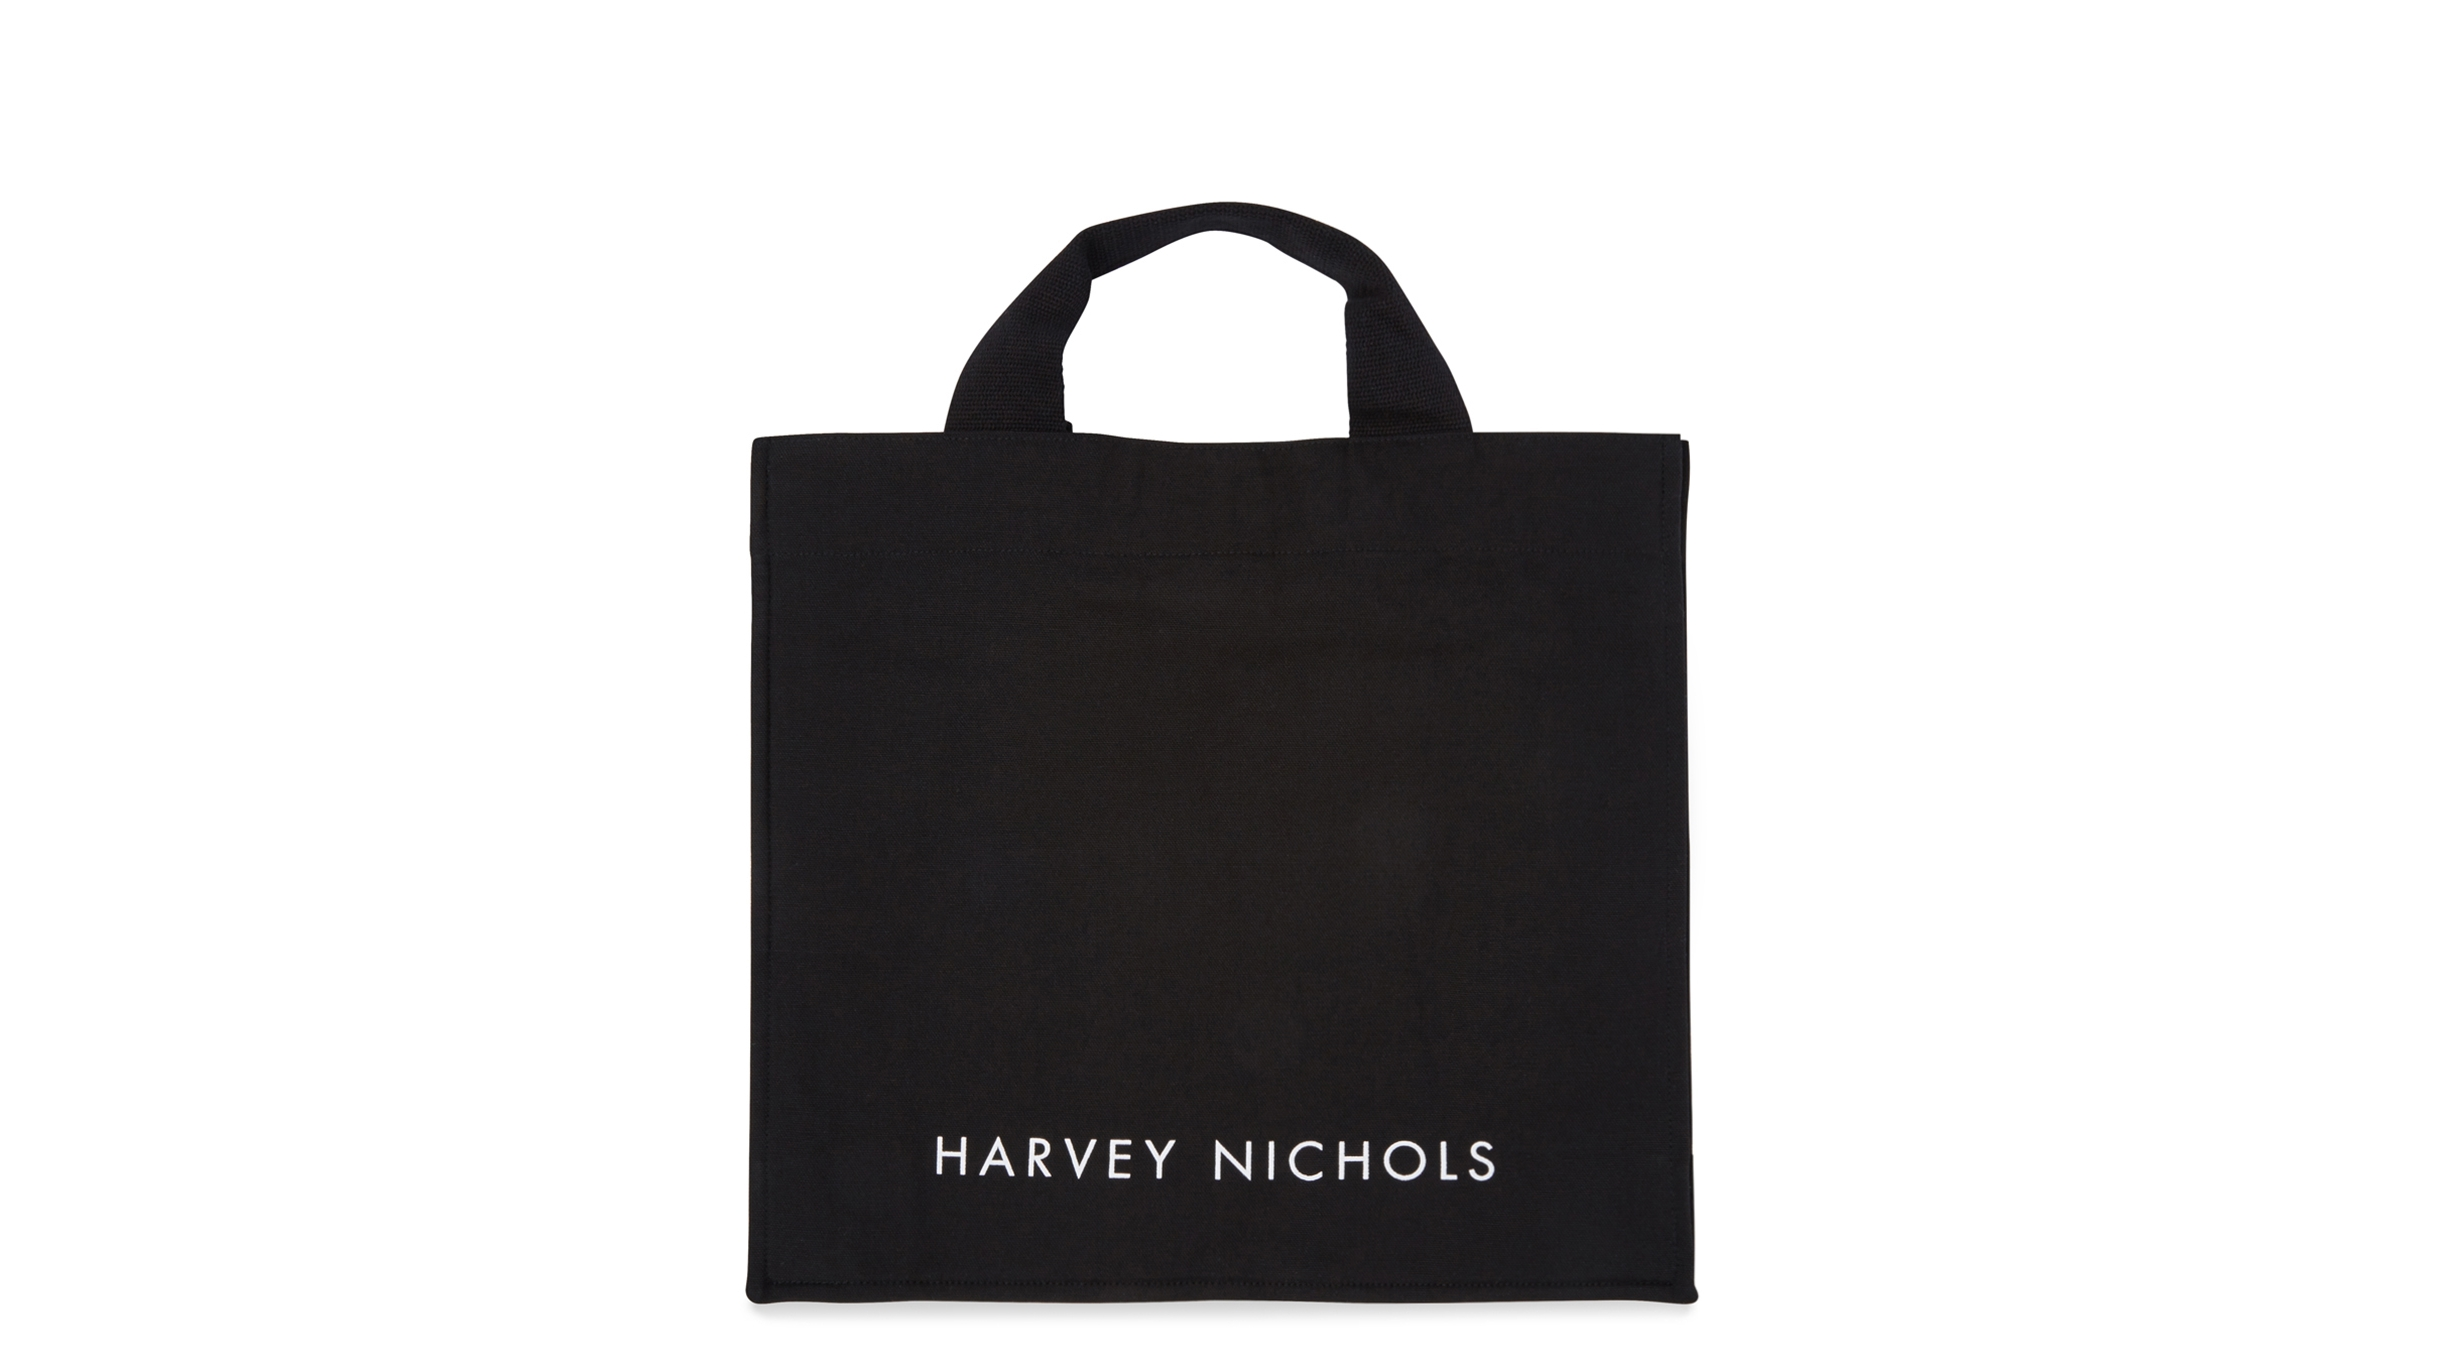 90df84cd3031 Harvey Nichols Short Handle Black Canvas Tote Bag